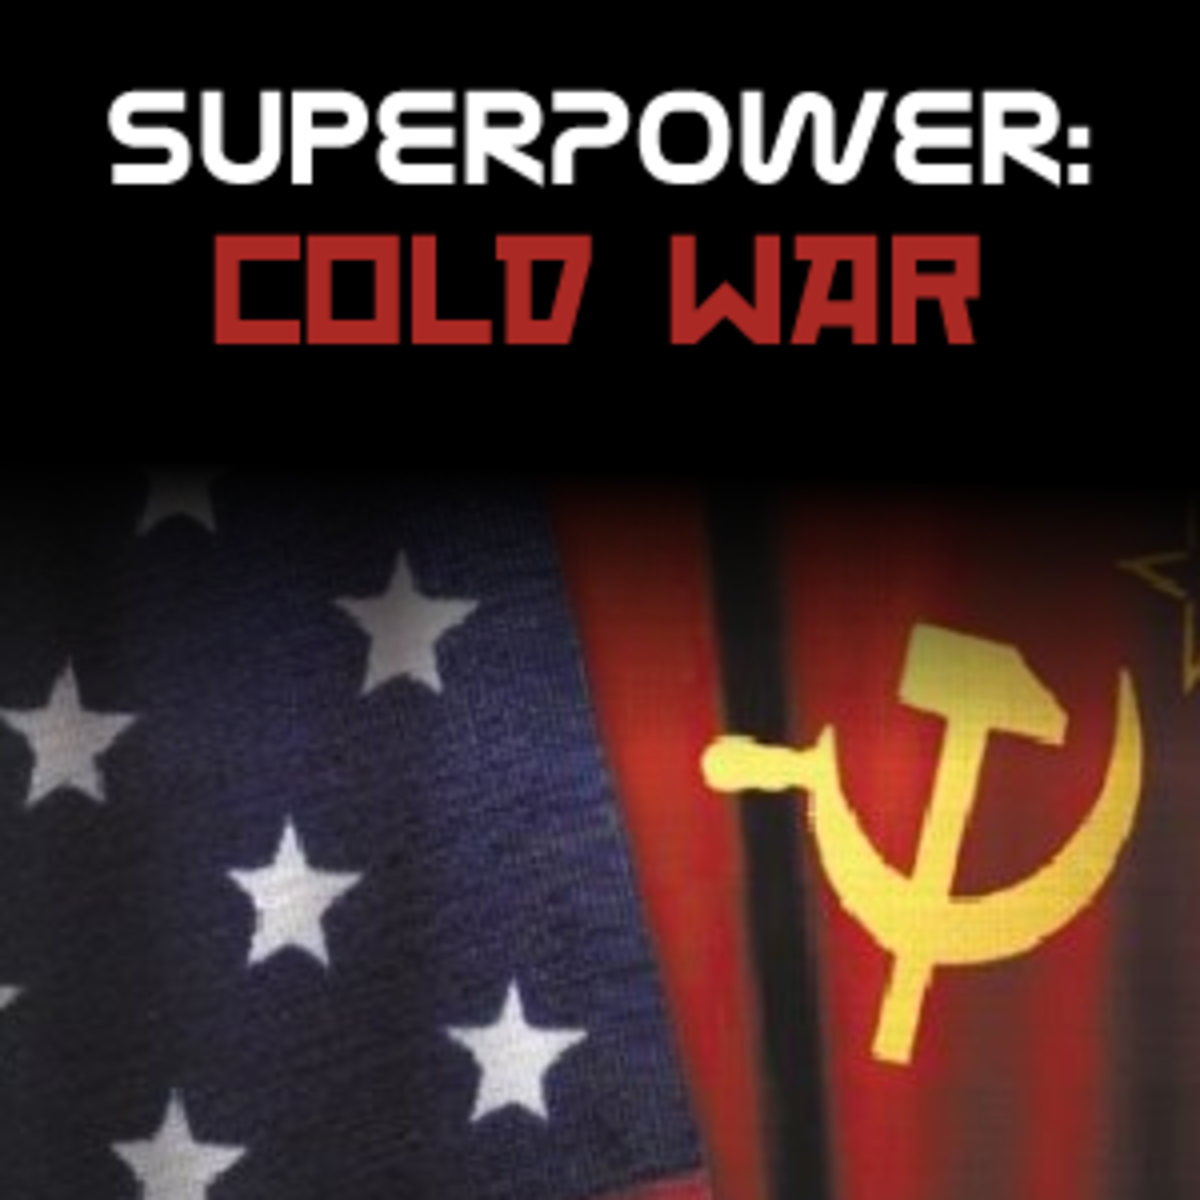 The cold war ideas lasted since from the second World War; today both super powers are broke and ineffective